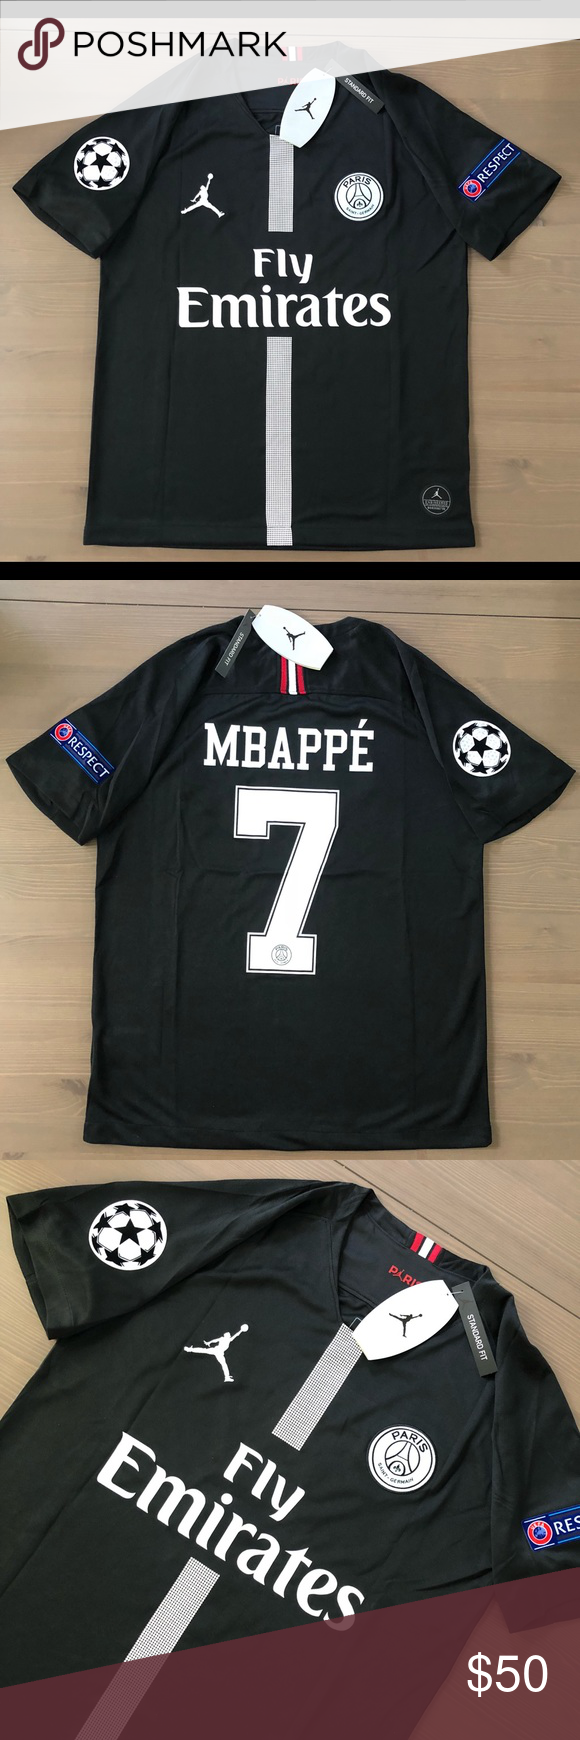 competitive price 19570 81583 PSG Black Jordan Mbappe #7 soccer jersey men PSG Black ...